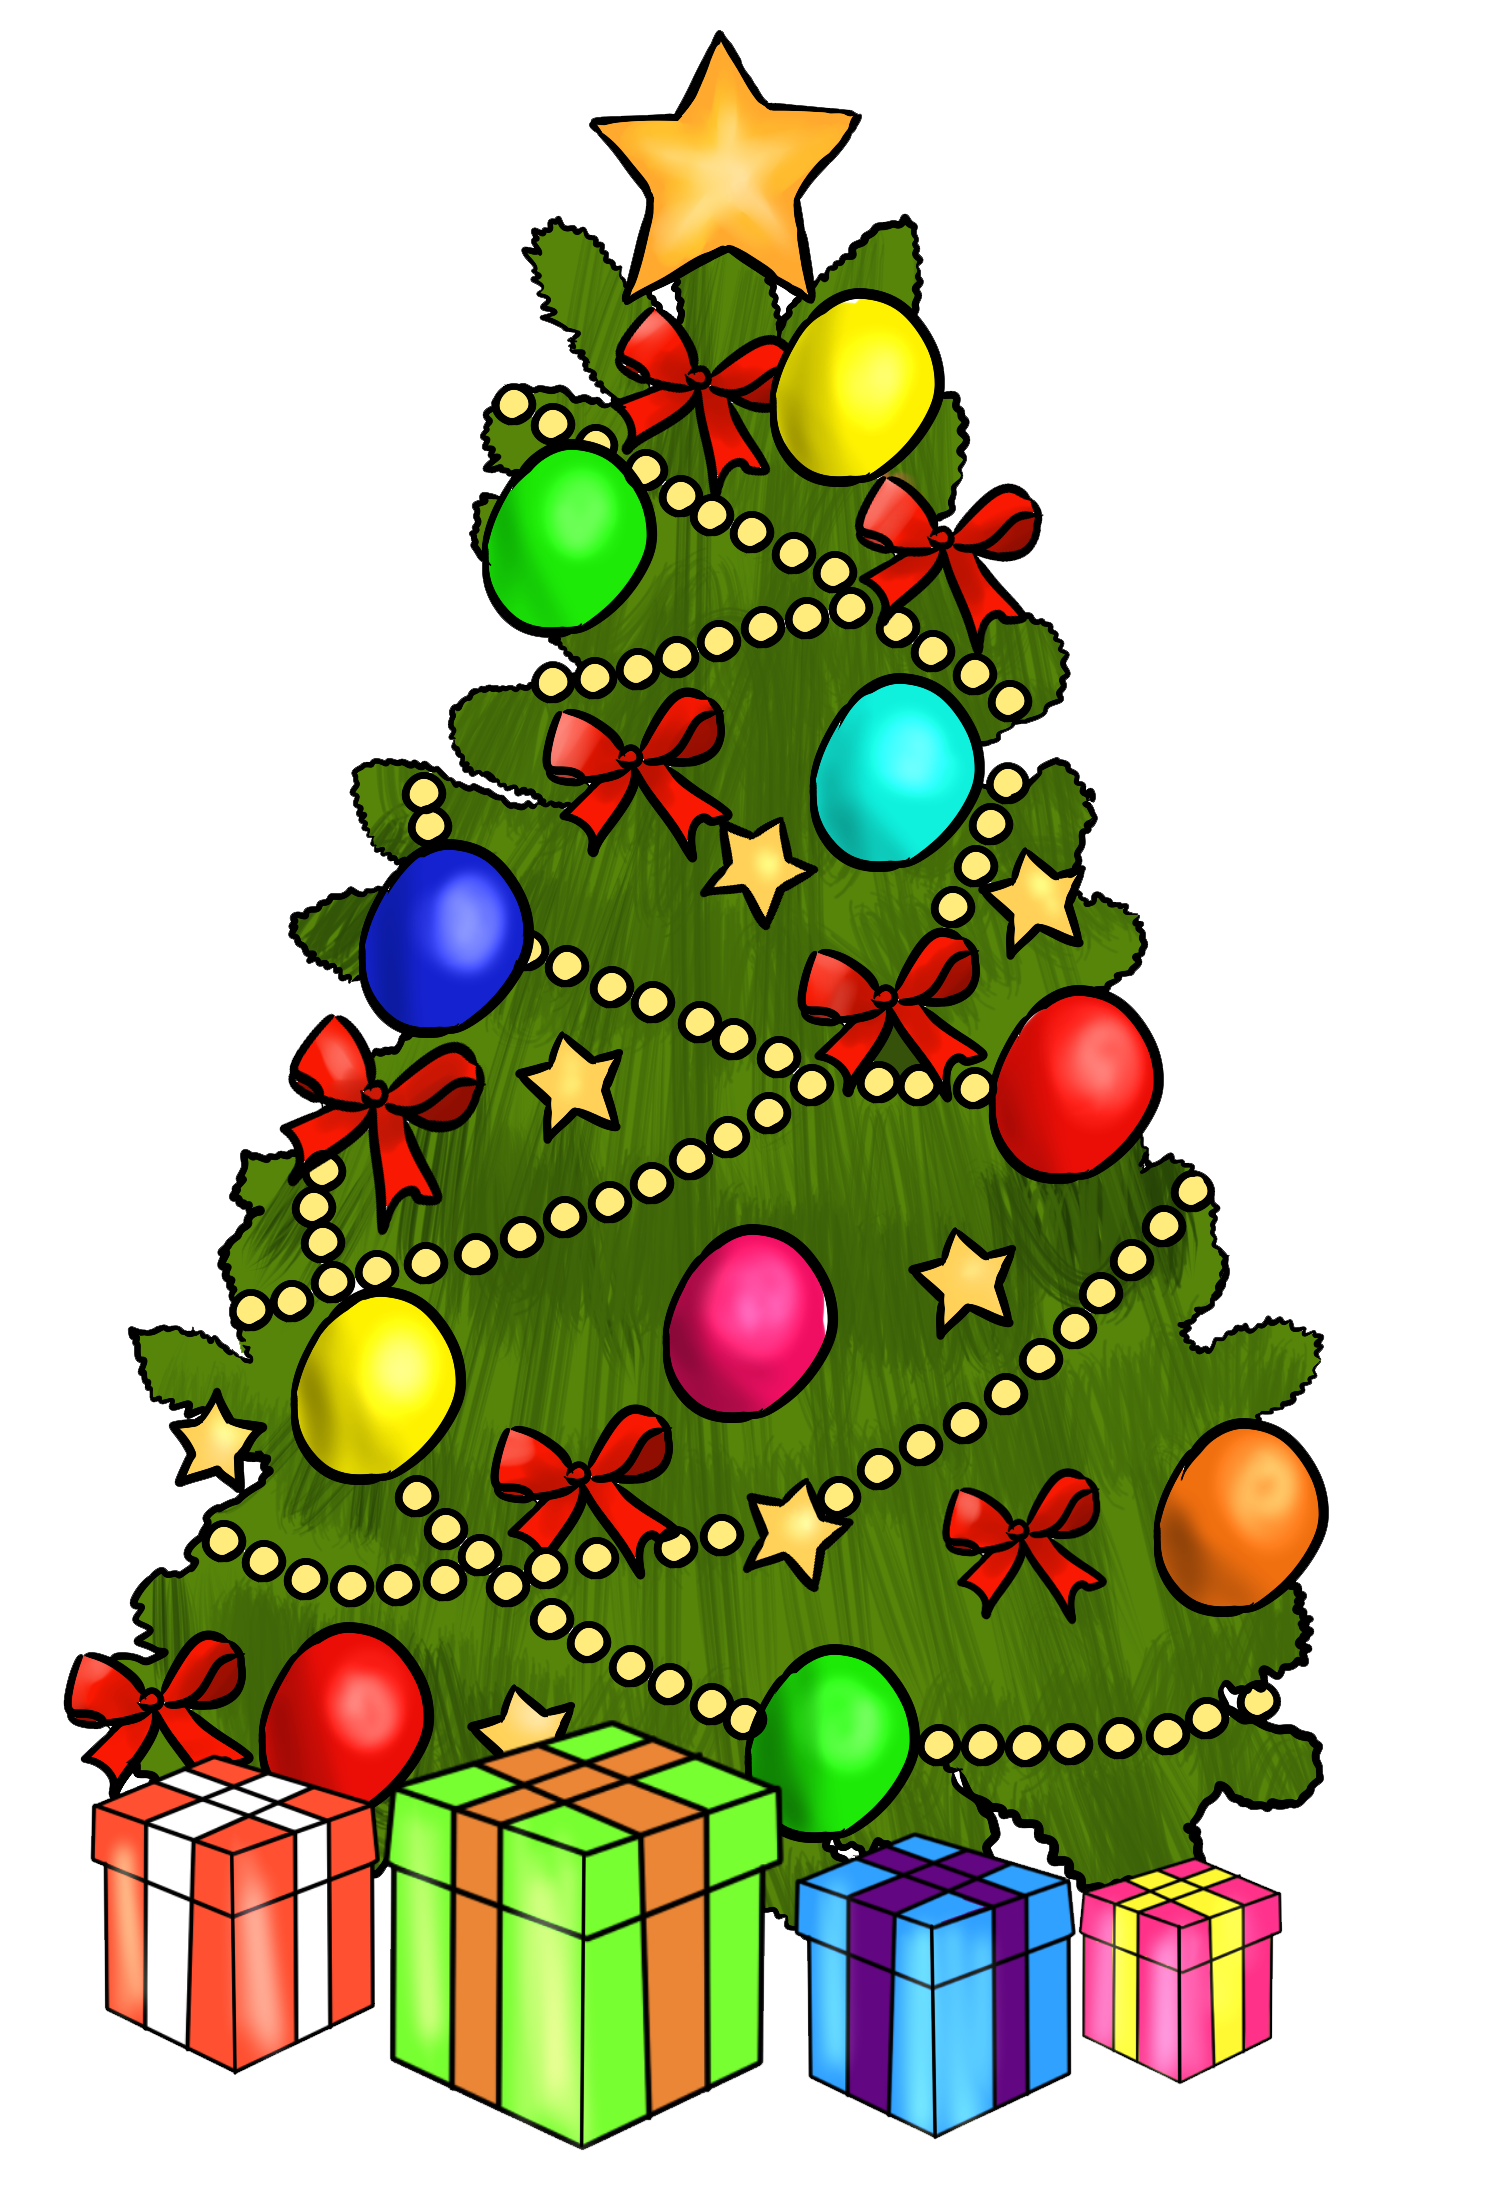 Cartoon clipart christmas tree image freeuse Free Pictures Of Christmas, Download Free Clip Art, Free Clip Art on ... image freeuse